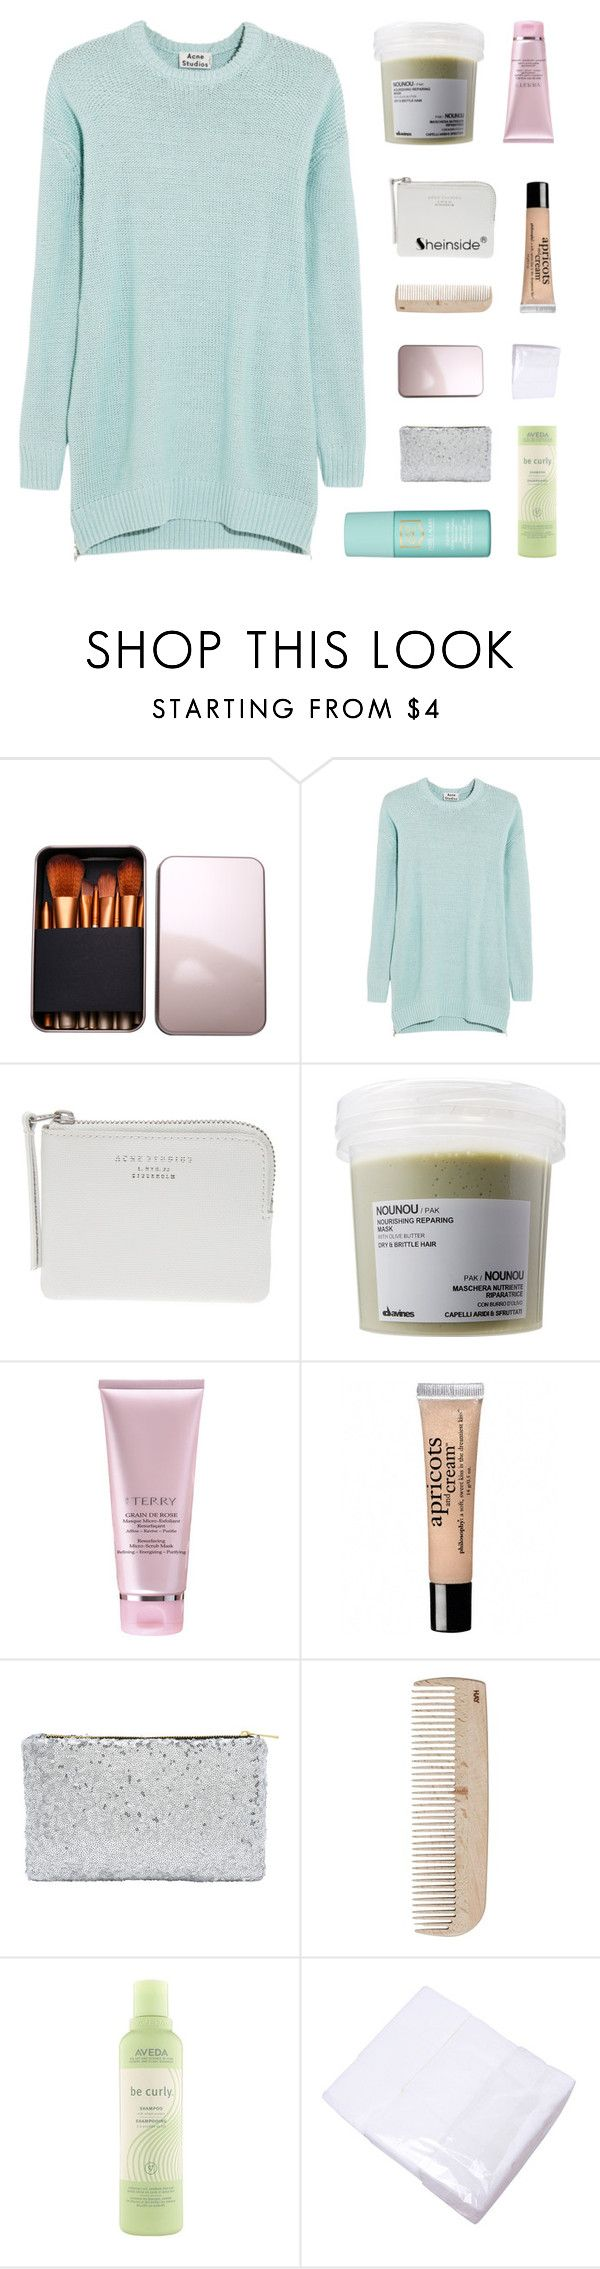 """""""with one motion it could all go wrong"""" by kristen-gregory-sexy-sports-babe ❤ liked on Polyvore featuring Acne Studios, Davines, philosophy, HAY, Aveda and Estée Lauder"""